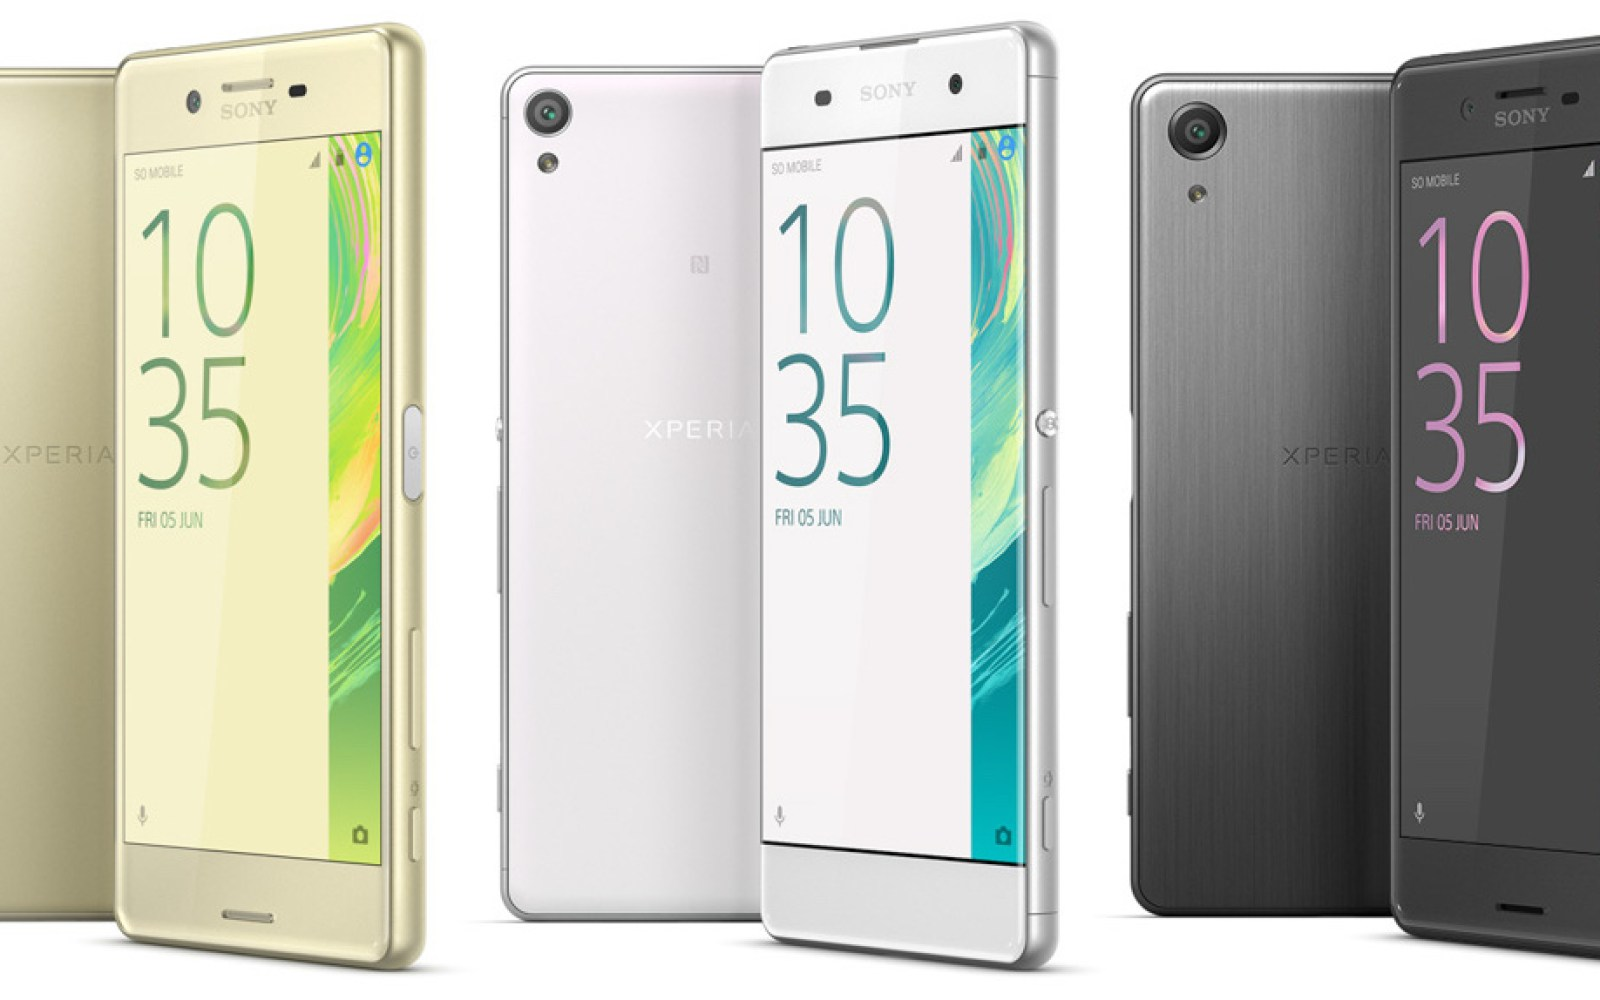 Xperia X Performance owners can now try Android Nougat beta in some countries